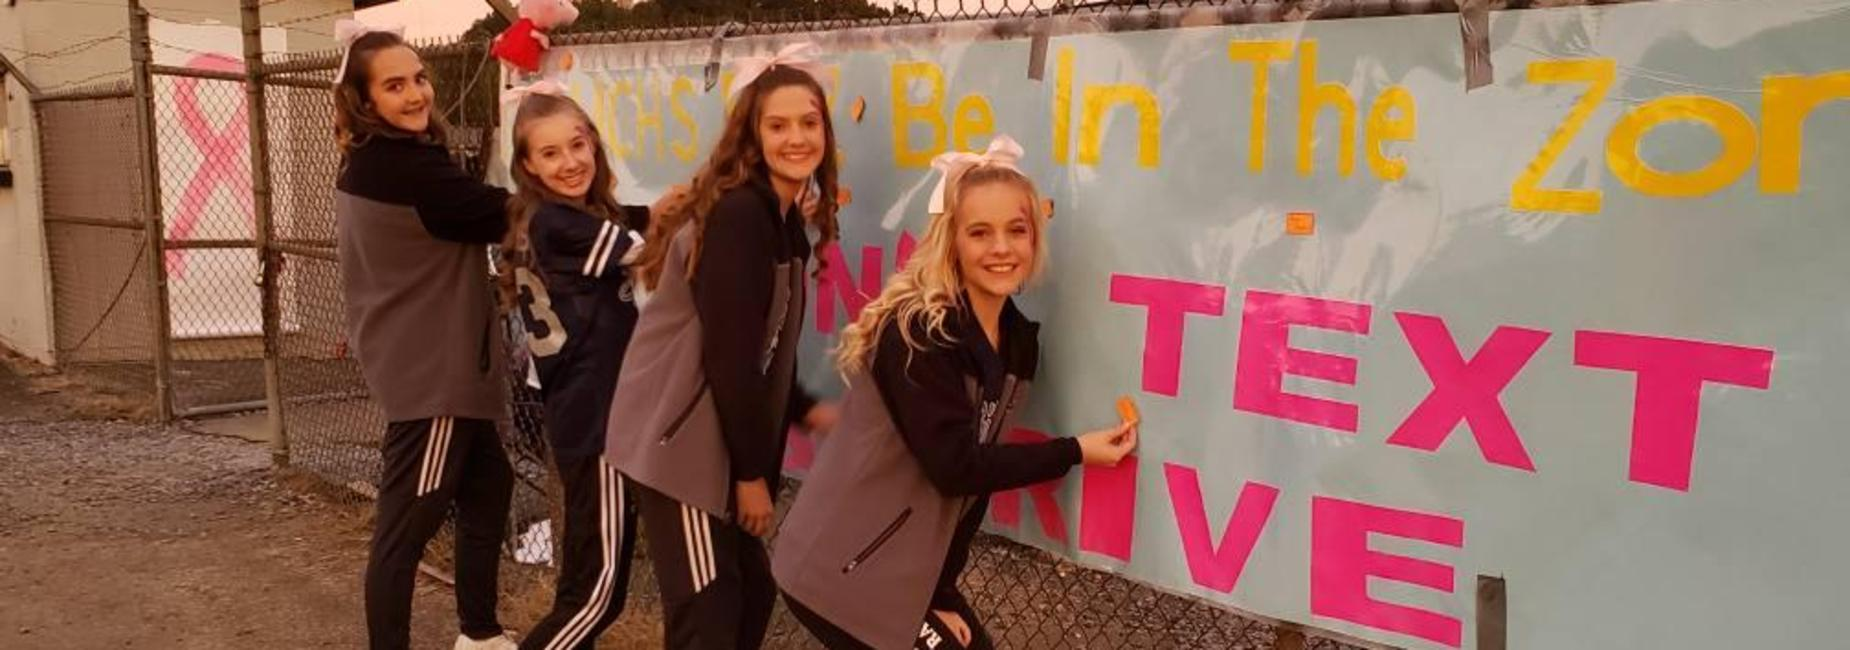 Cheerleaders sign the pledge to not text and drive.